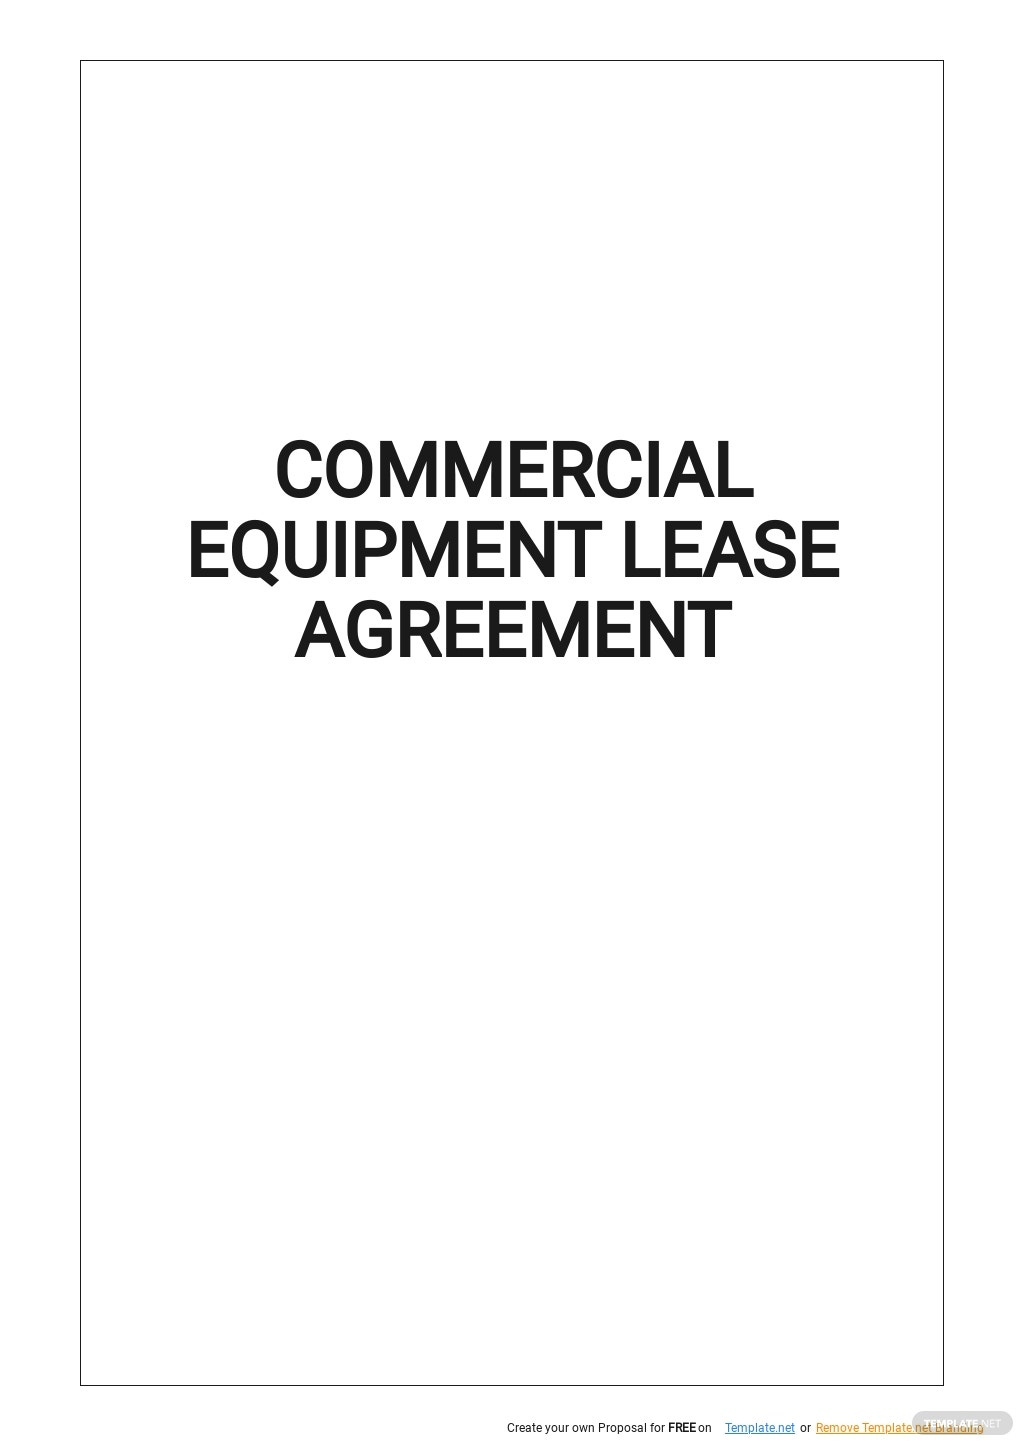 Commercial Equipment Lease Agreement Template.jpe